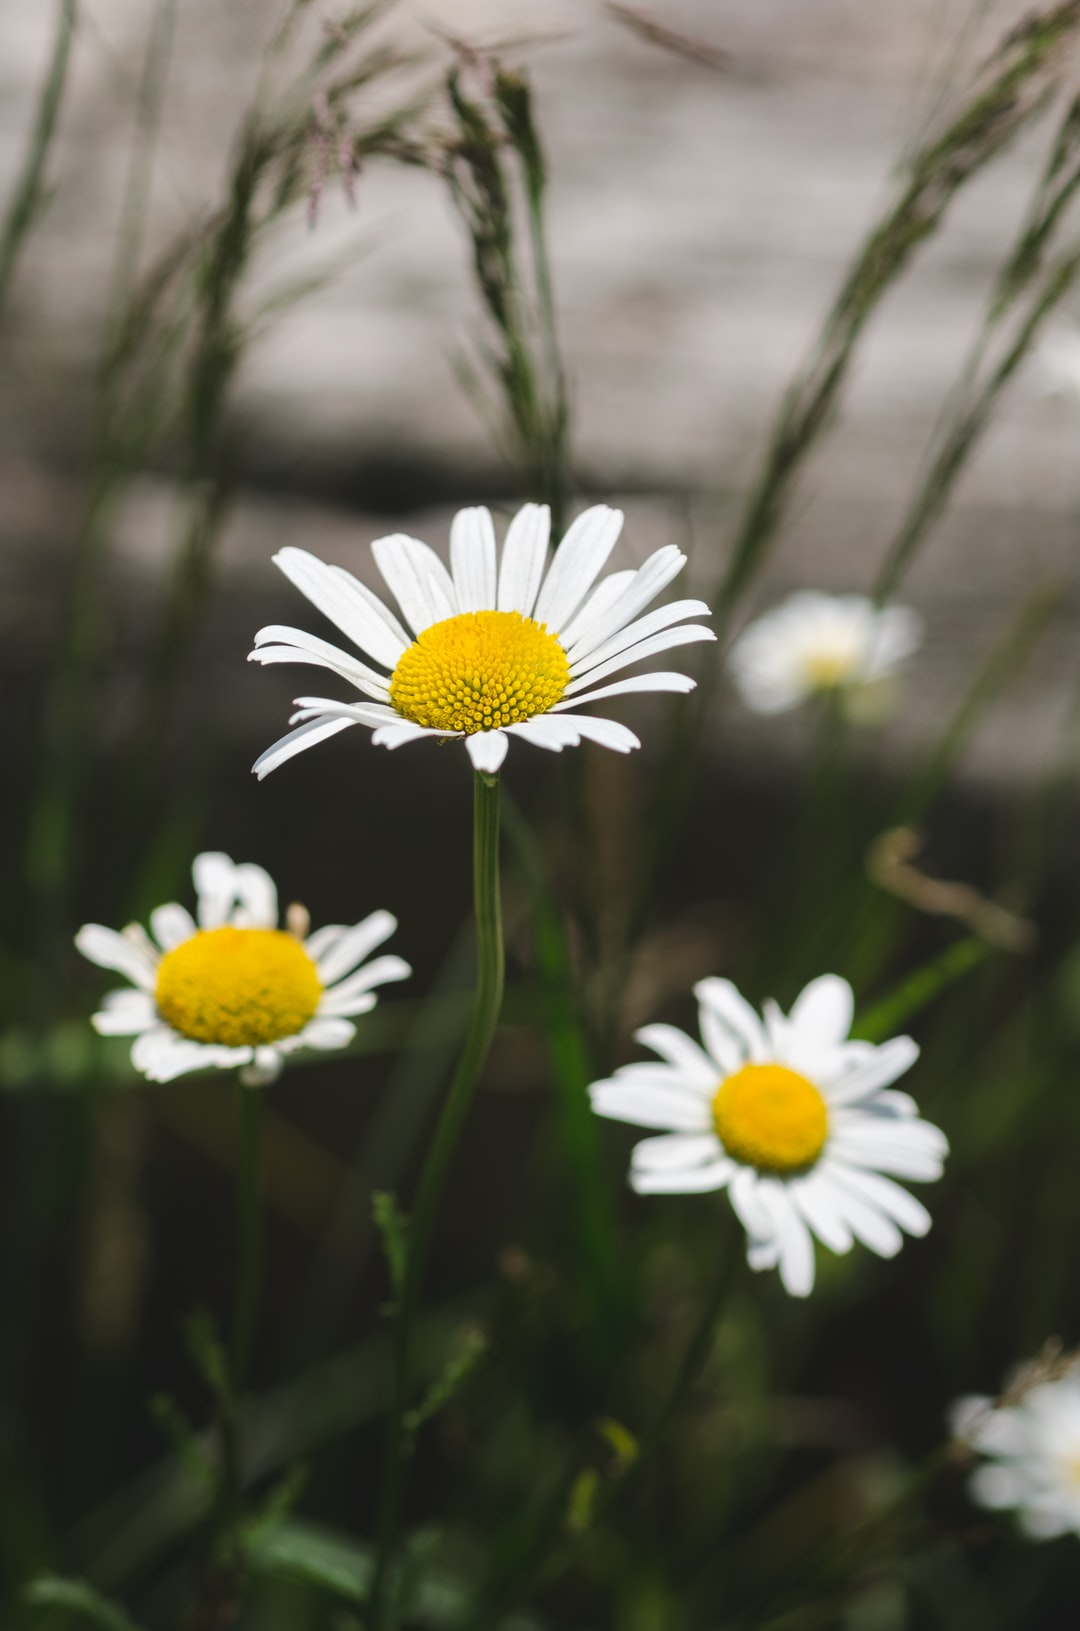 Close-up of daisy flowers (Bellas perennis)